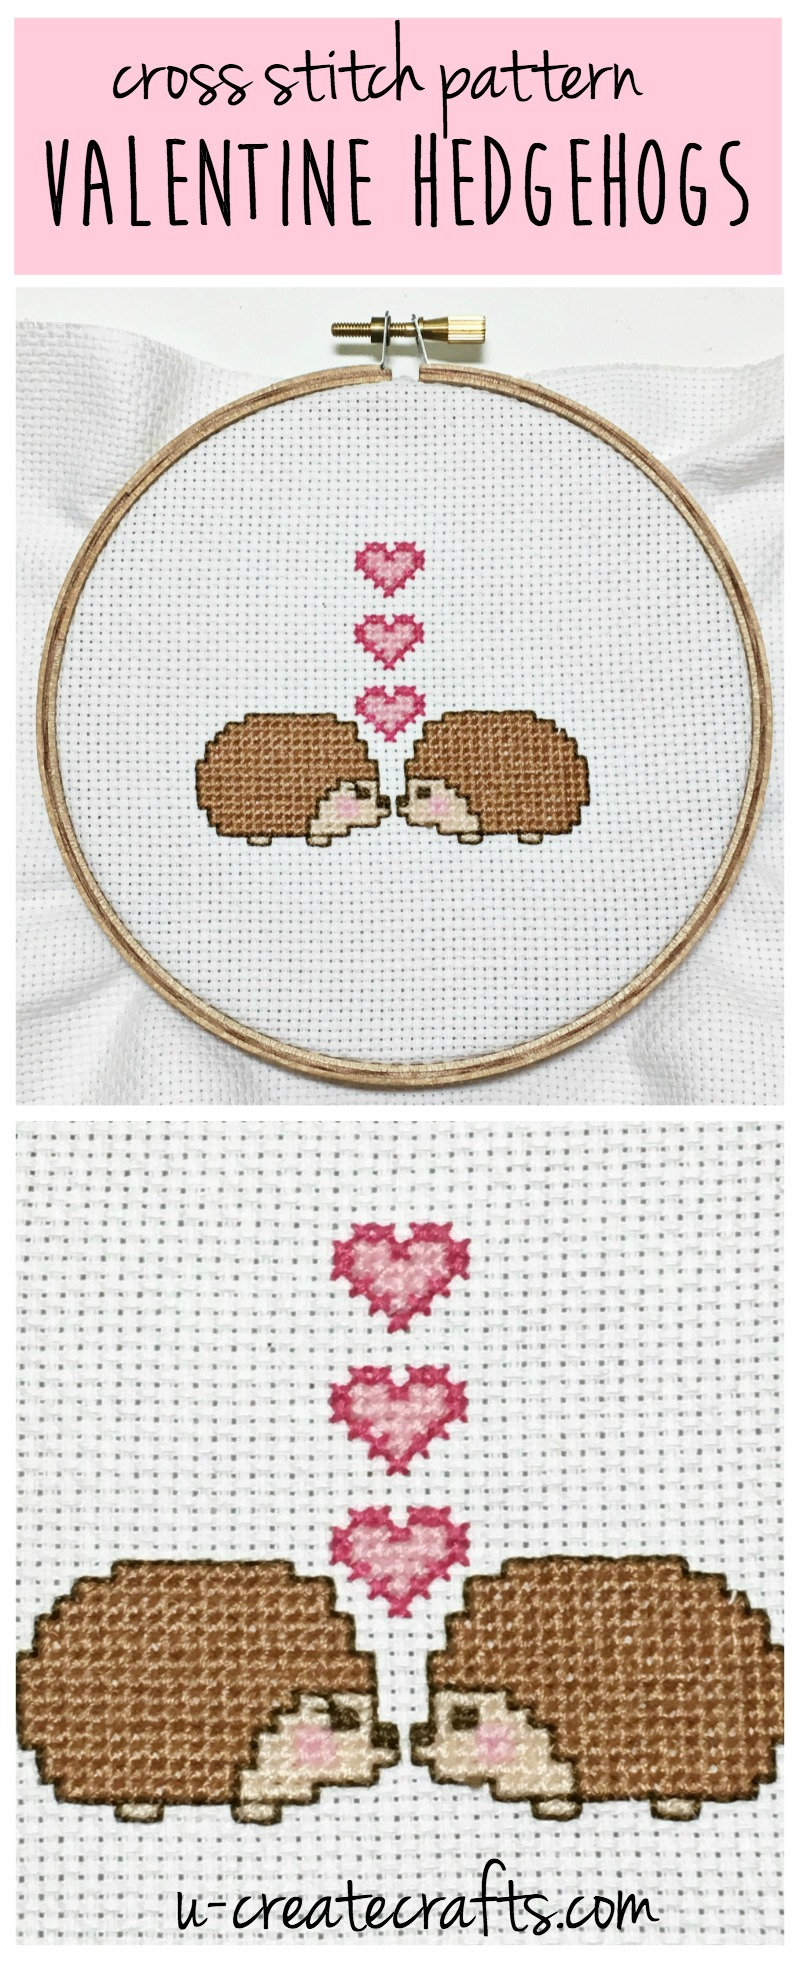 Cross Stitch Pattern - Valentine Hedgehogs by U Create